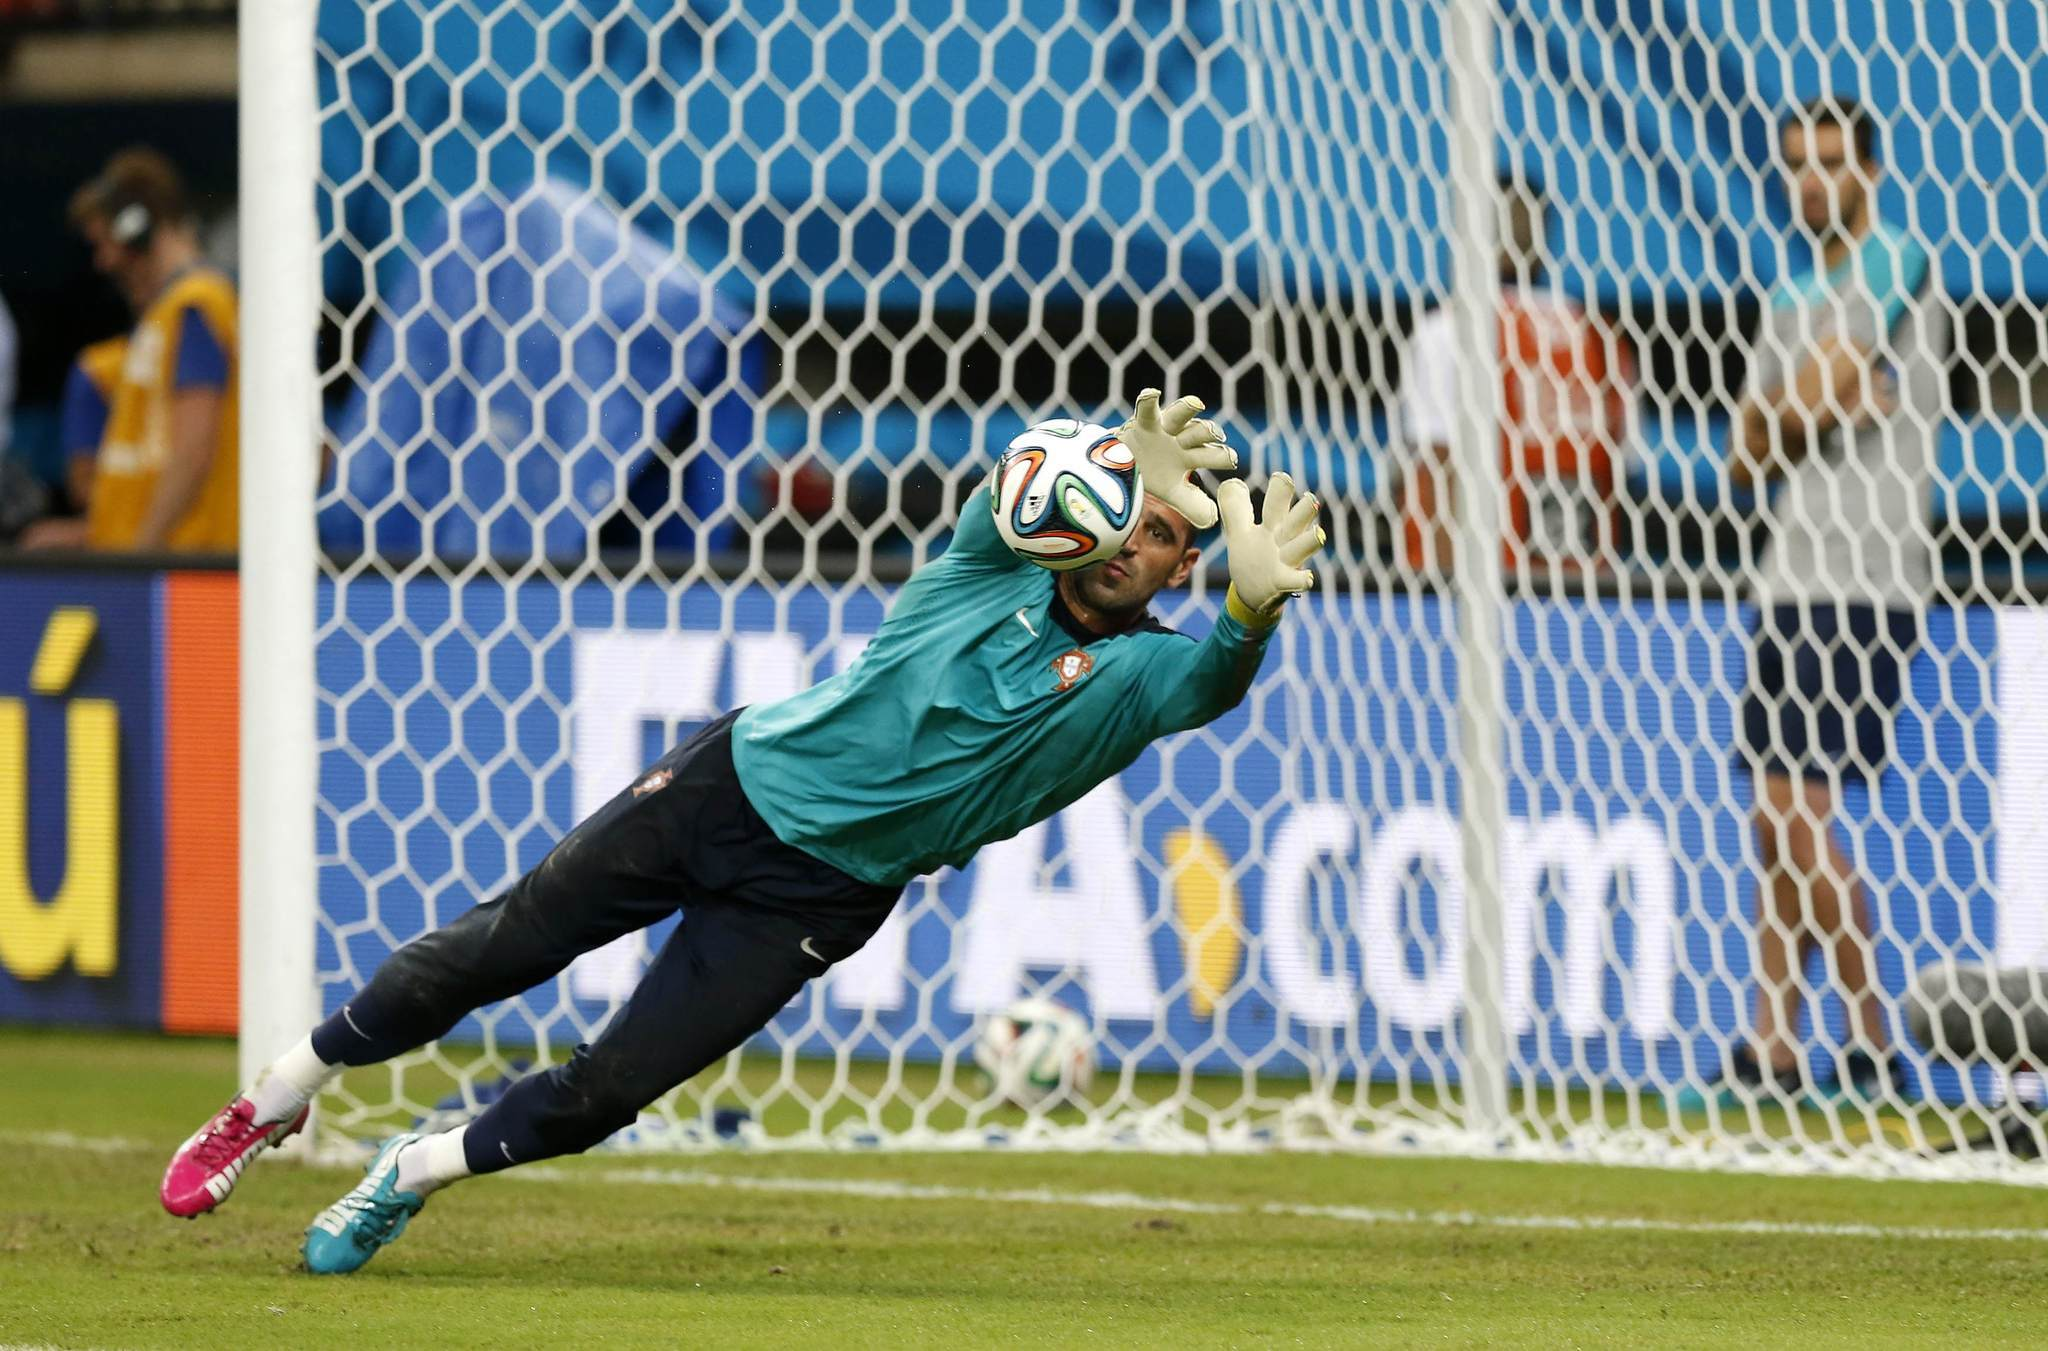 Portugal's goalkeeper Eduardo makes a save during team training at Arena da Amazonia stadium where Portugal will play against USA on June 22 during the Brazil 2014 World Cup, in Manaus June 21, 2014.